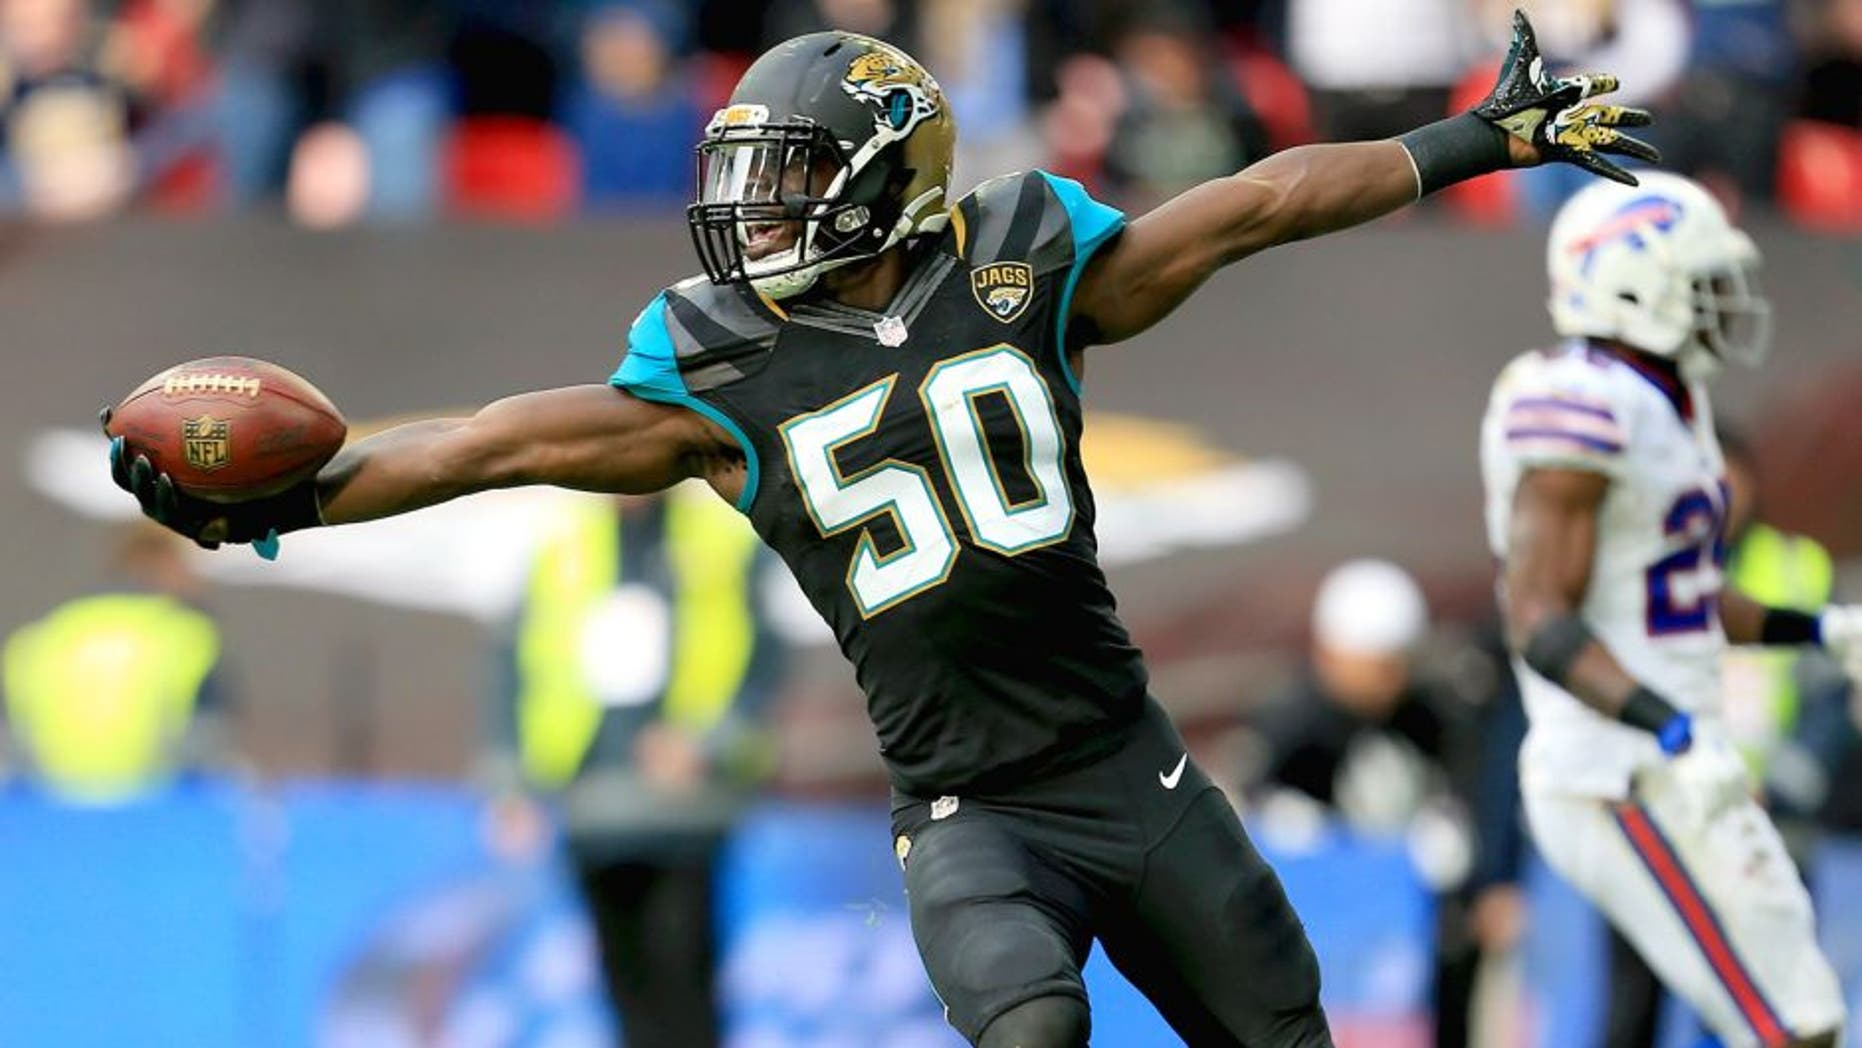 LONDON, ENGLAND - OCTOBER 25: Telvin Smith of the Jacksonville Jaguars celebrates a touchdown during the second quarter of the NFL game against the Buffalo Bills at Wembley Stadium on October 25, 2015 in London, England. (Photo by Stephen Pond/Getty Images)